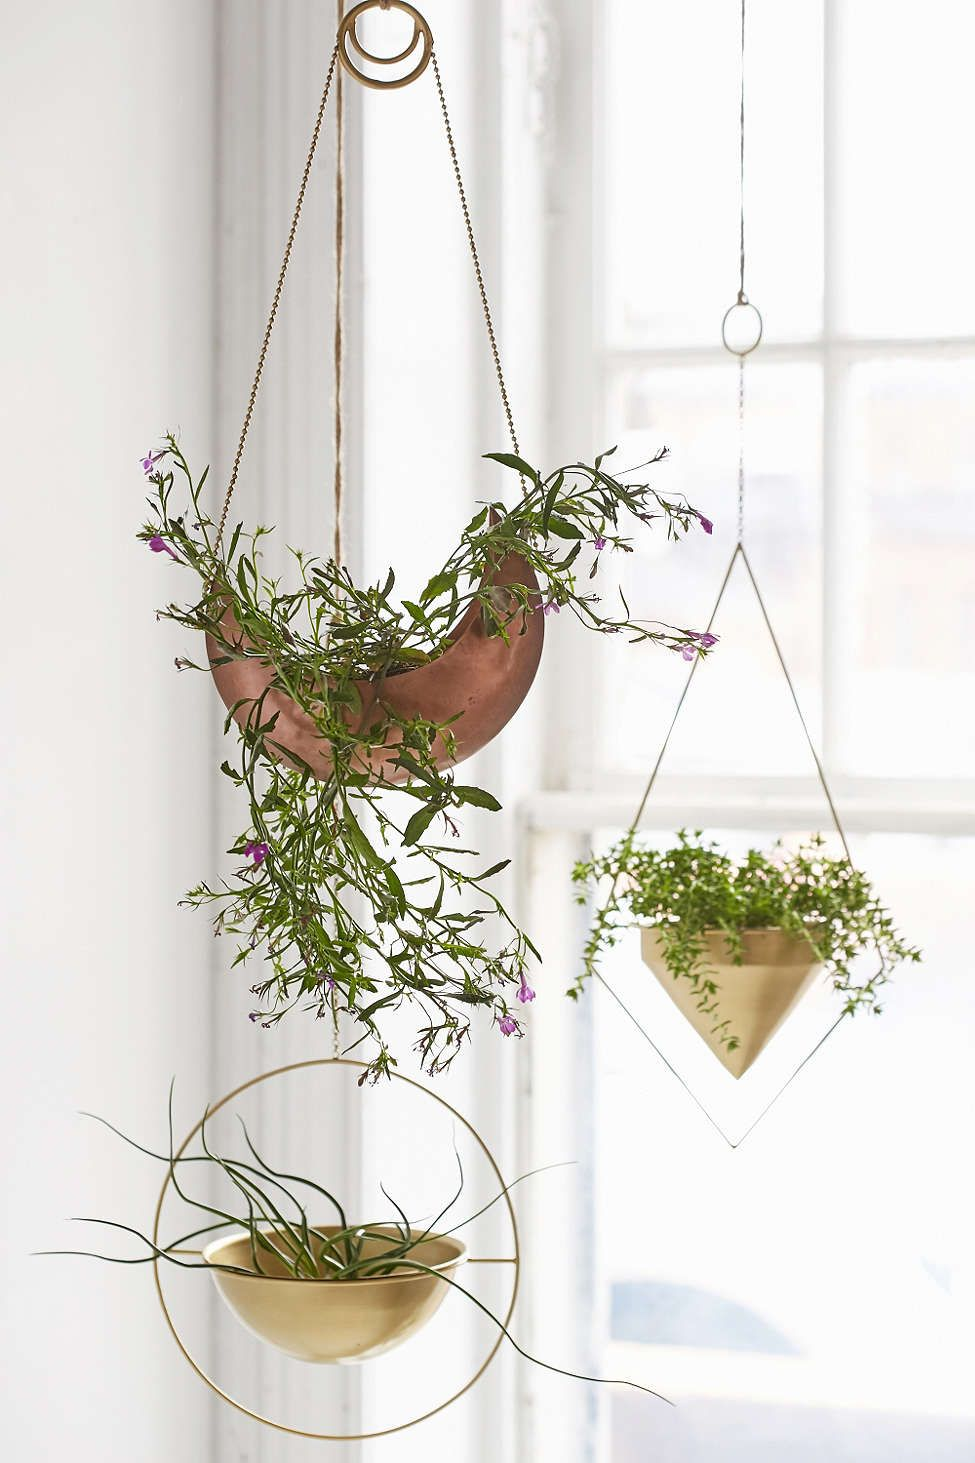 assembly home theia hanging planter planters urban outfitters